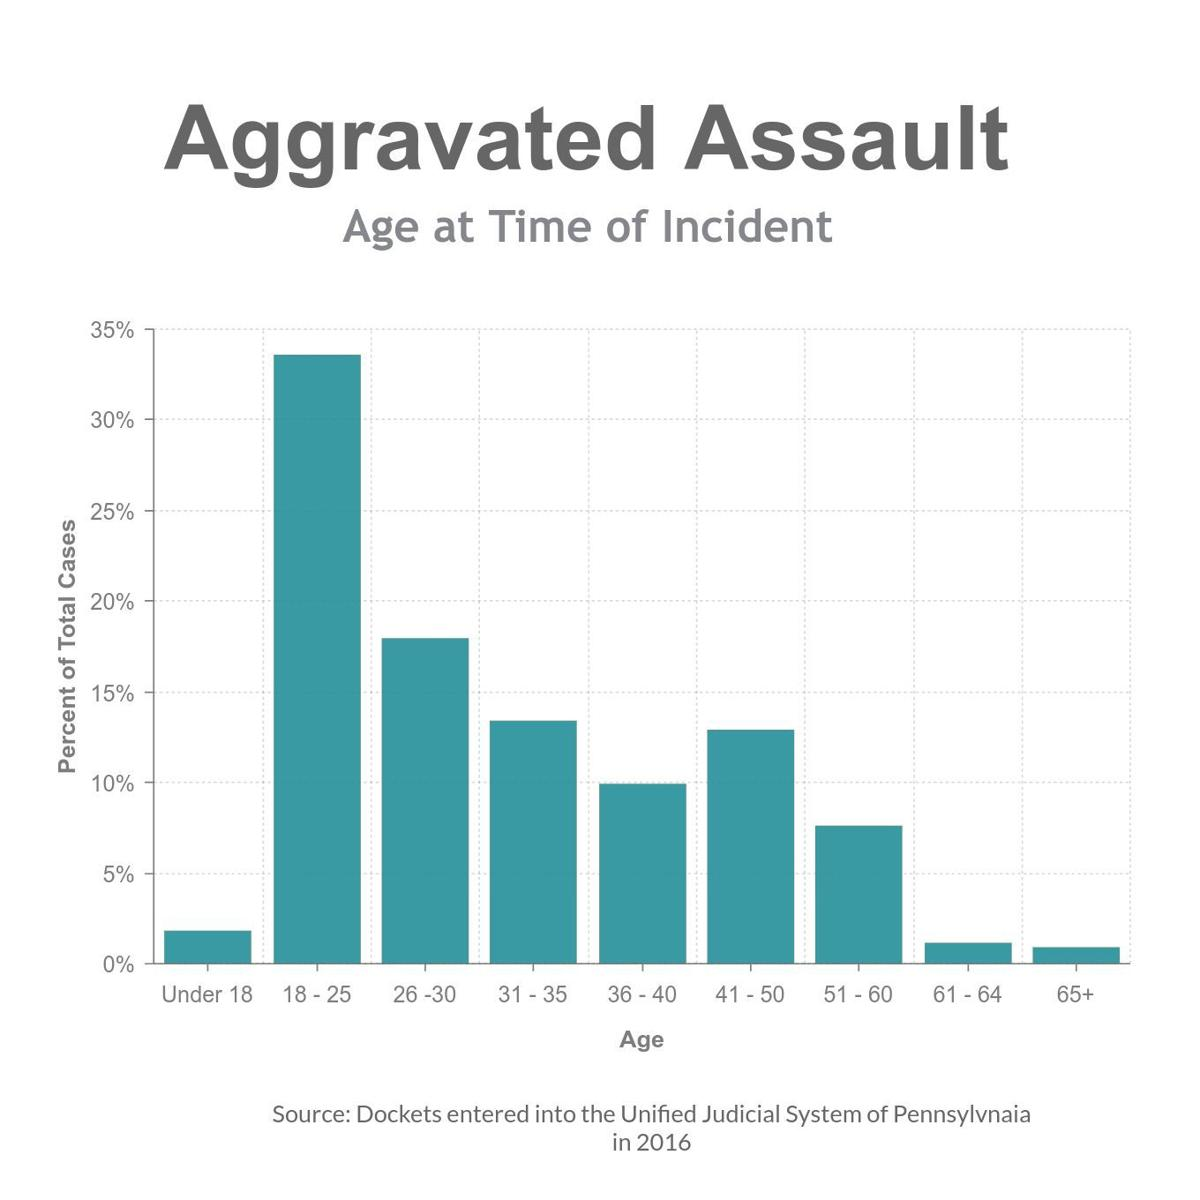 Agg Assault age distribution